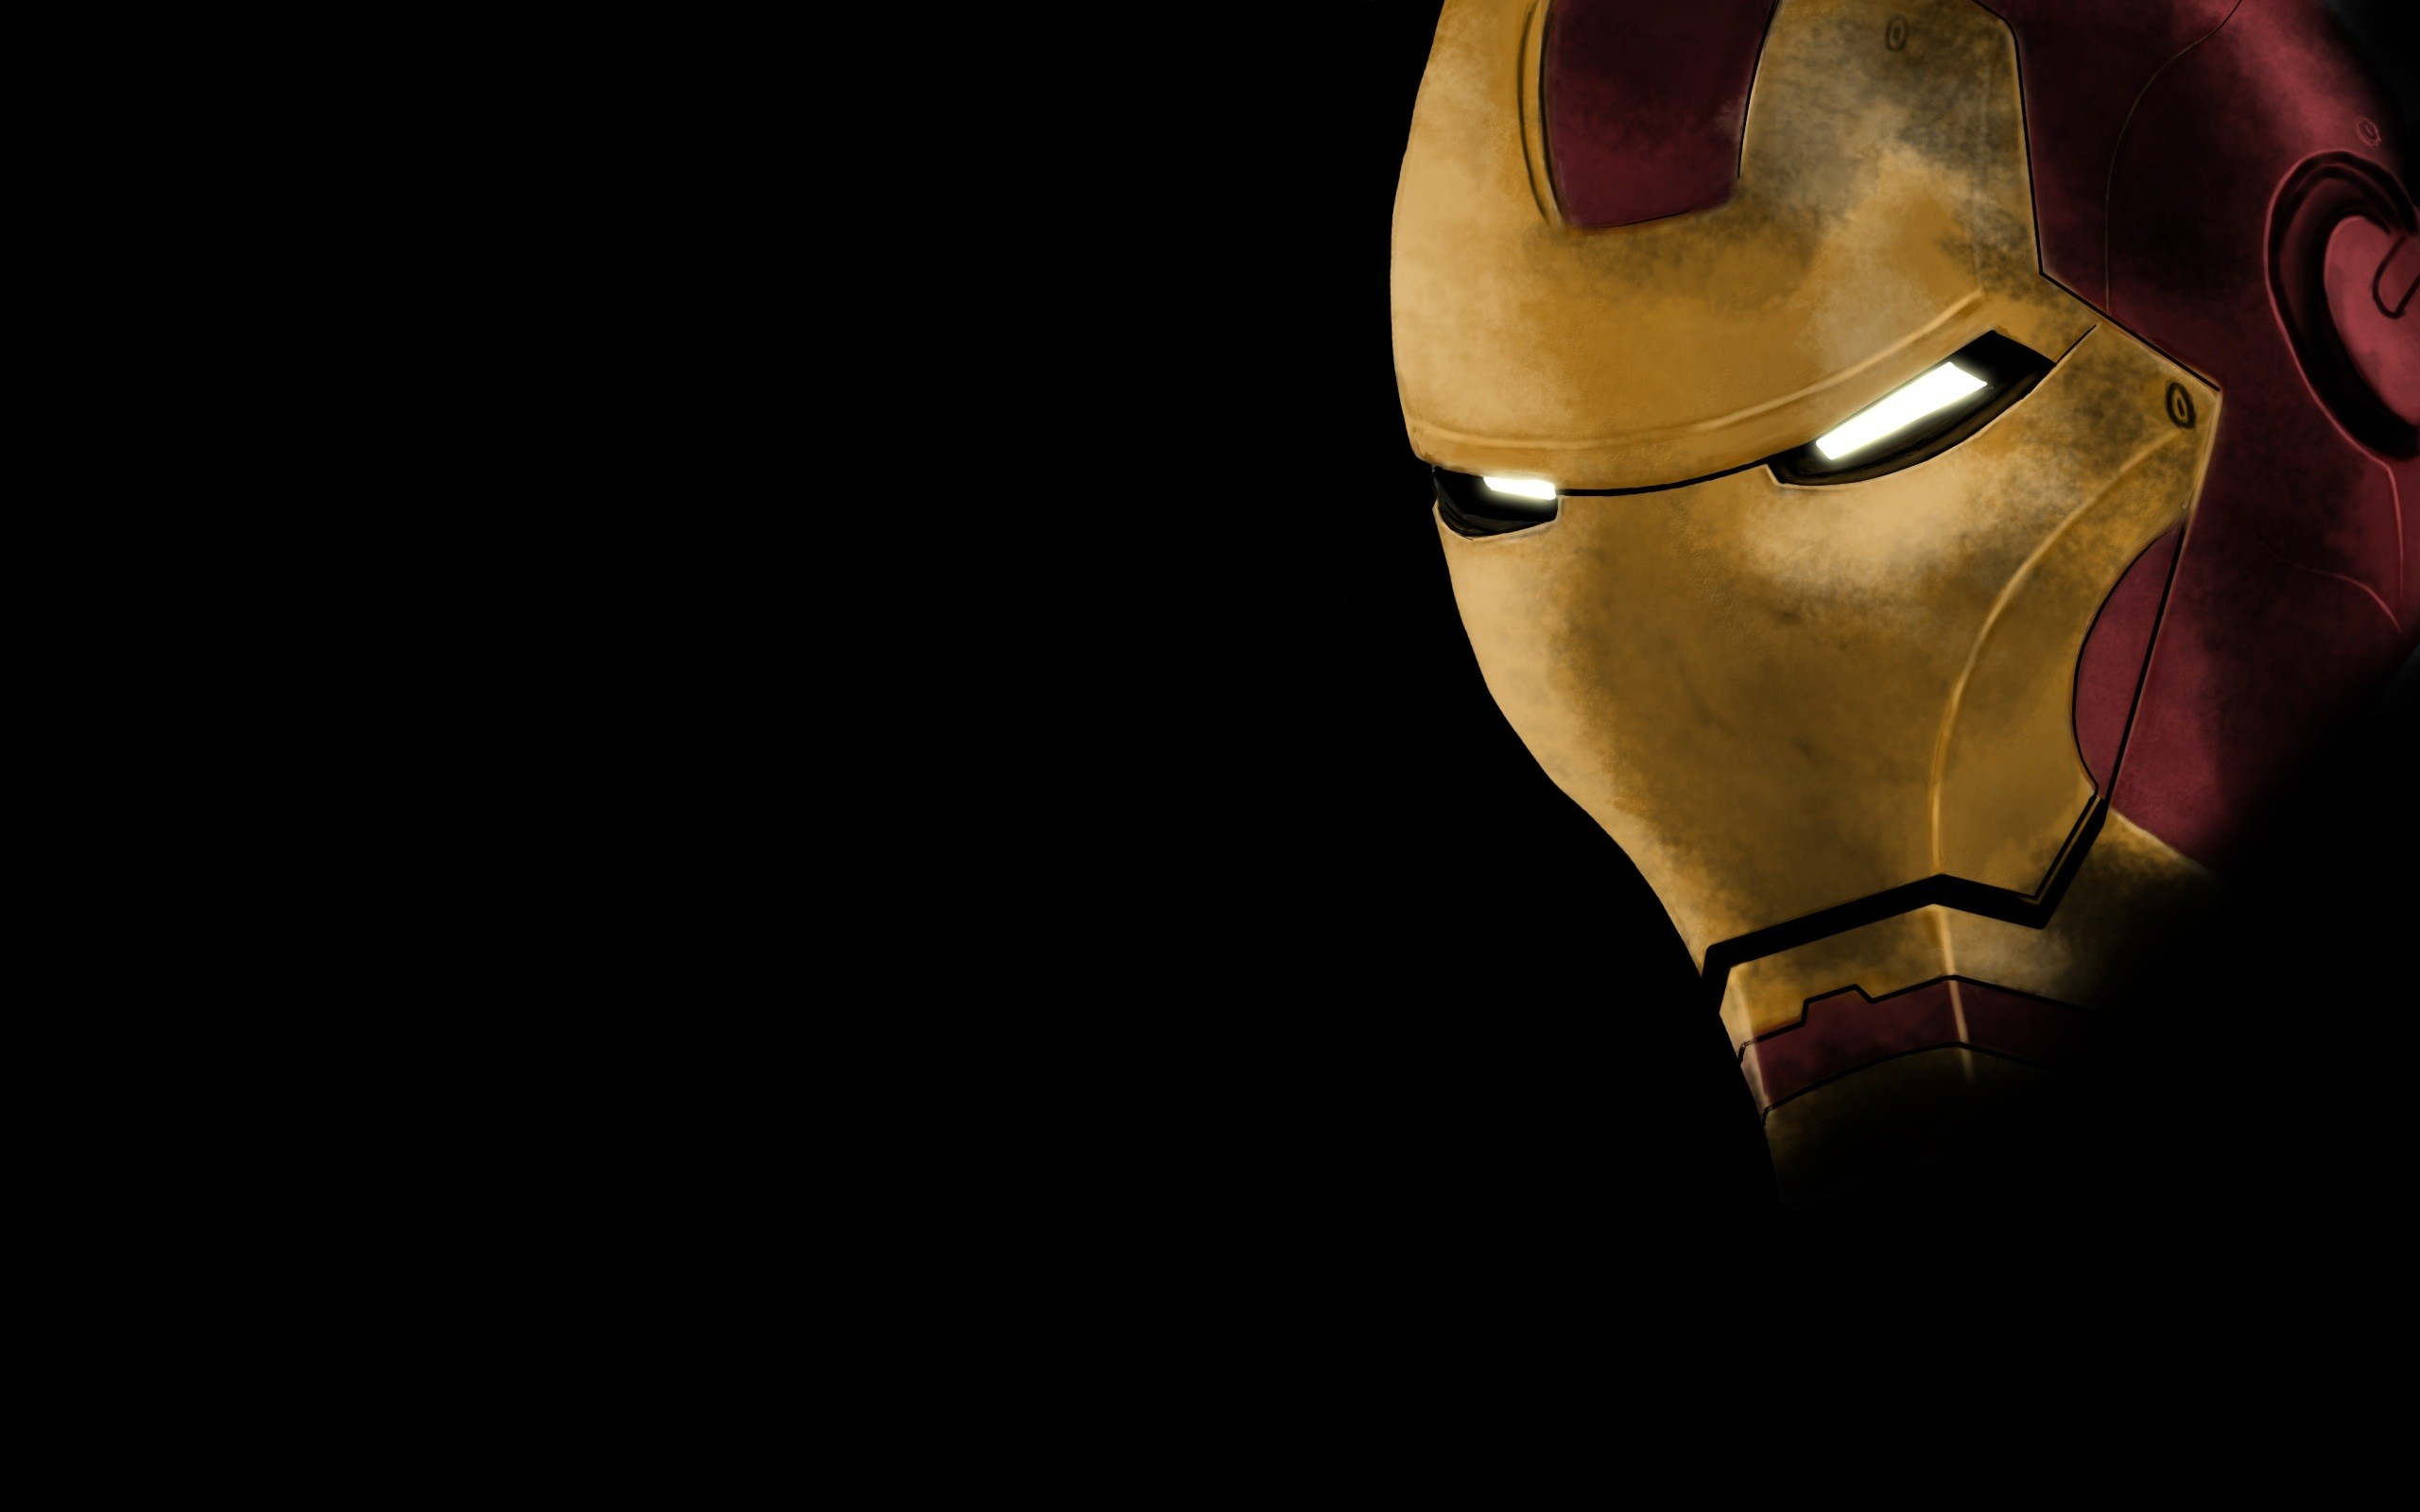 Explore Iron Man Wallpaper, Wallpaper For, and more!